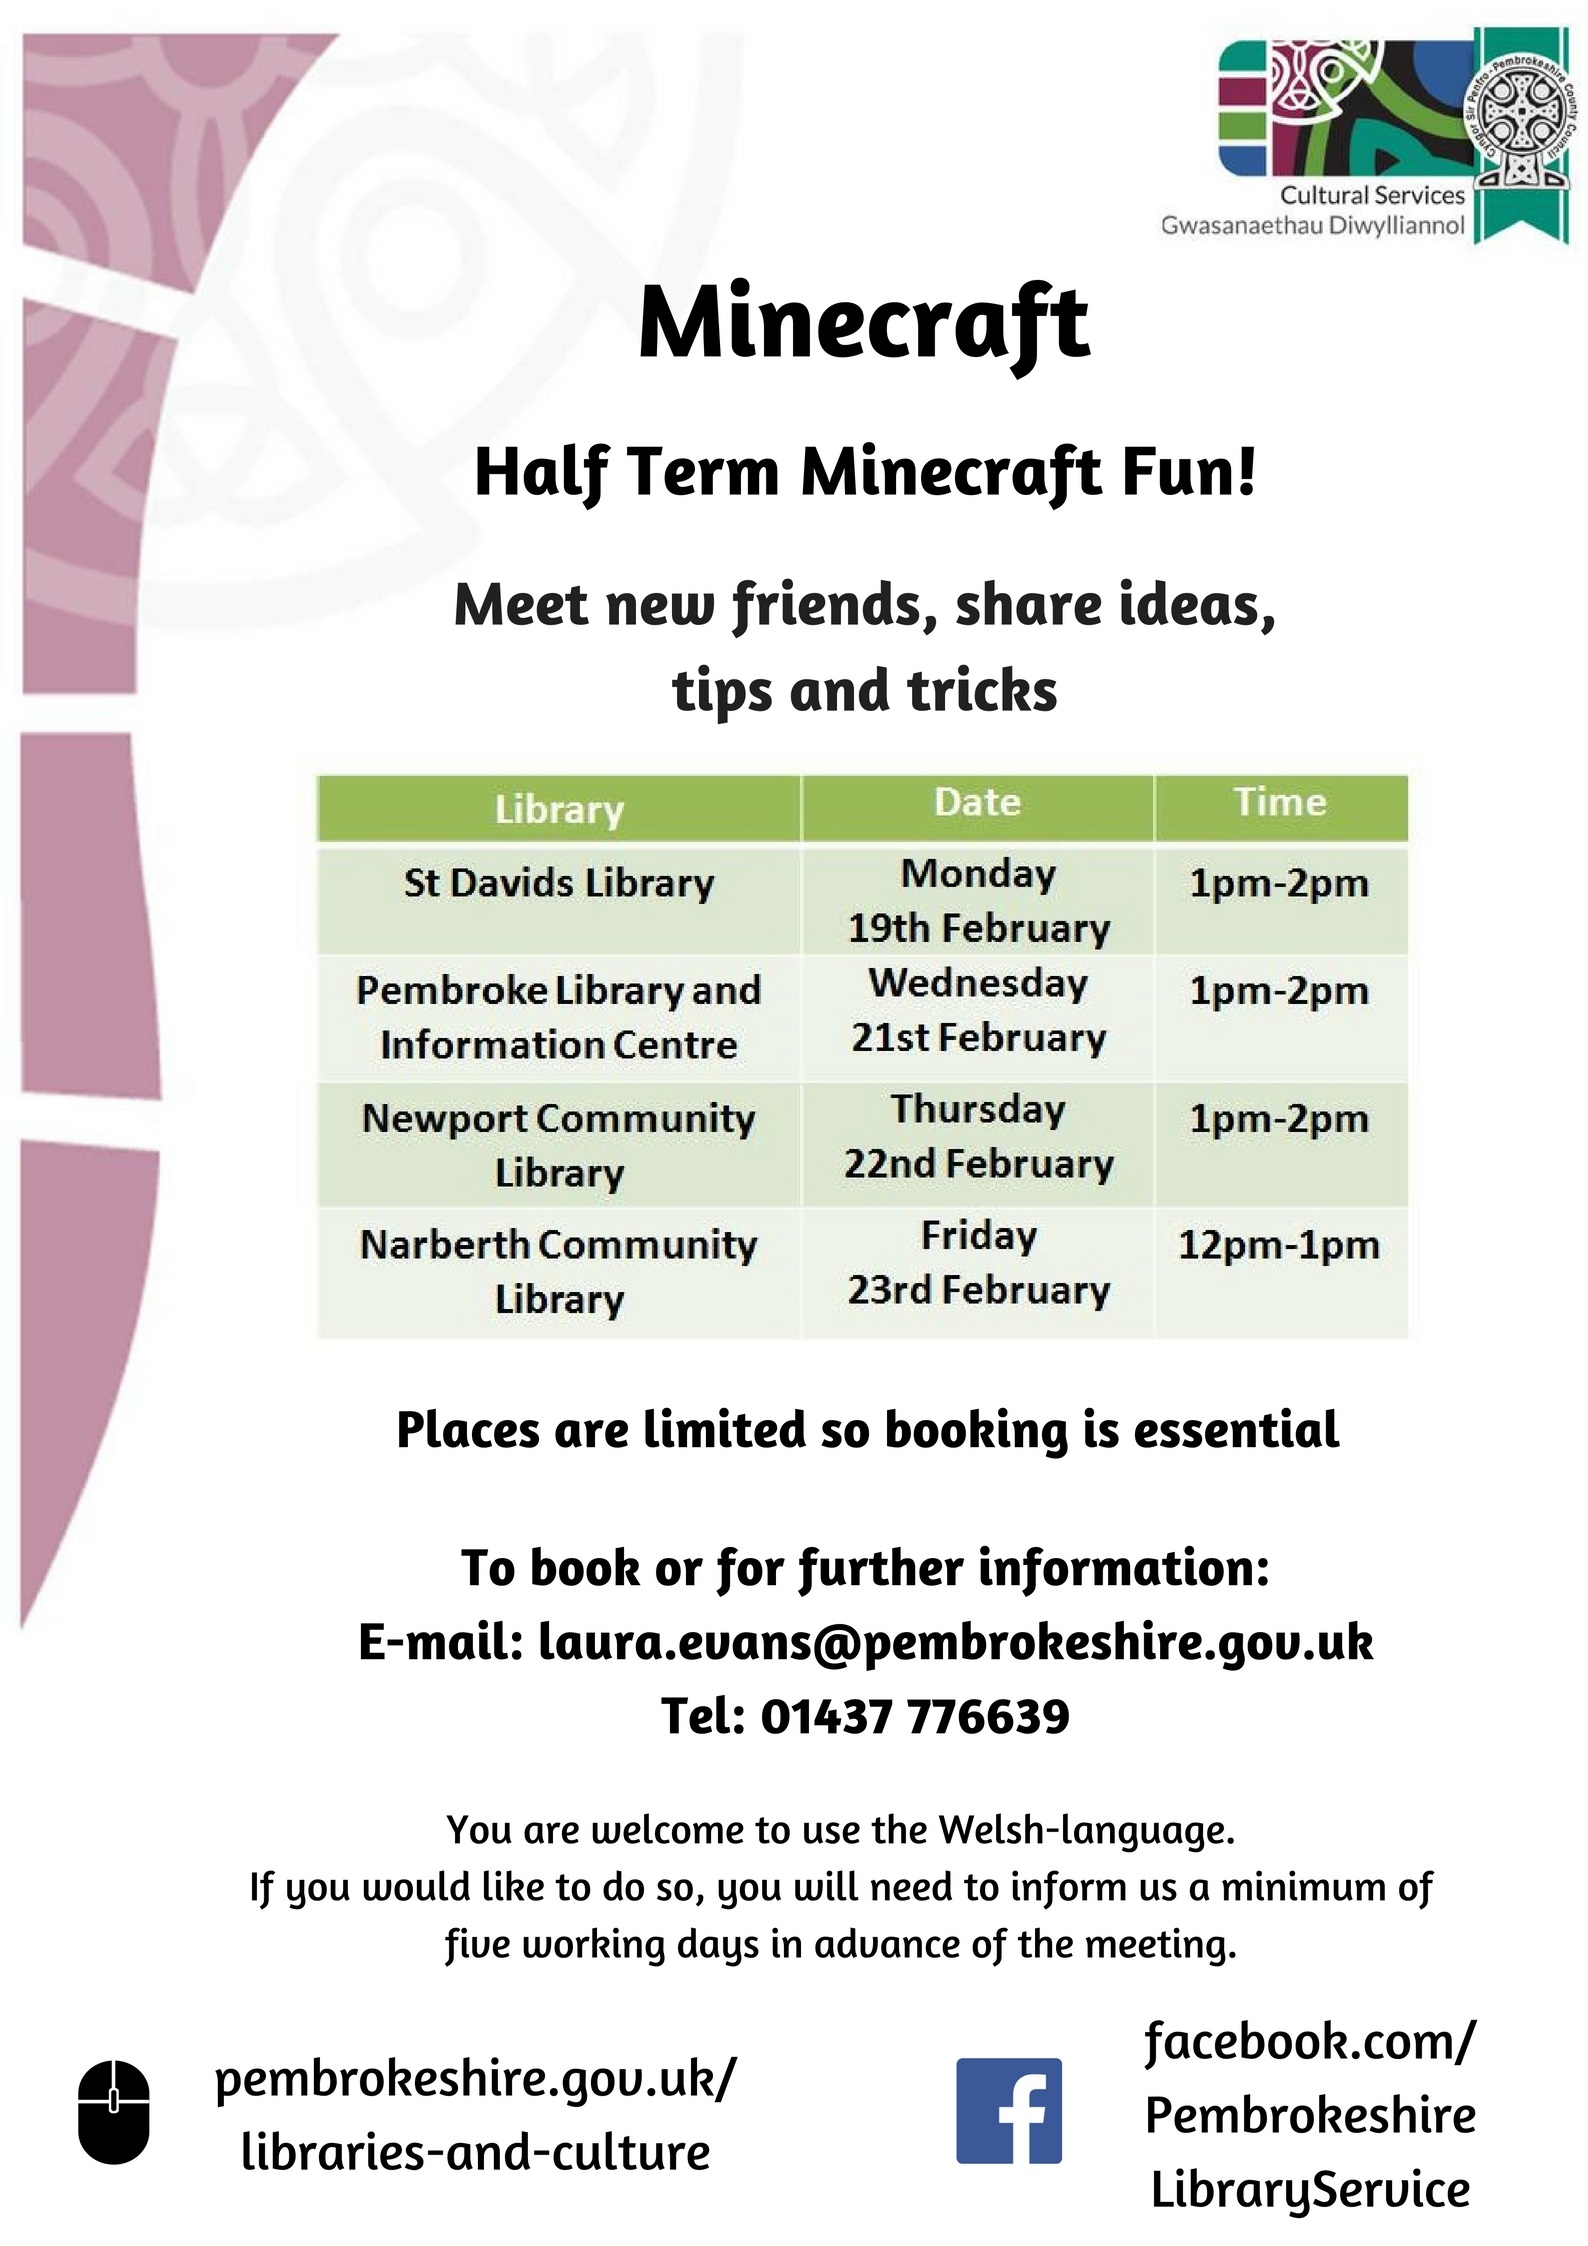 Half Term Minecraft Fun!